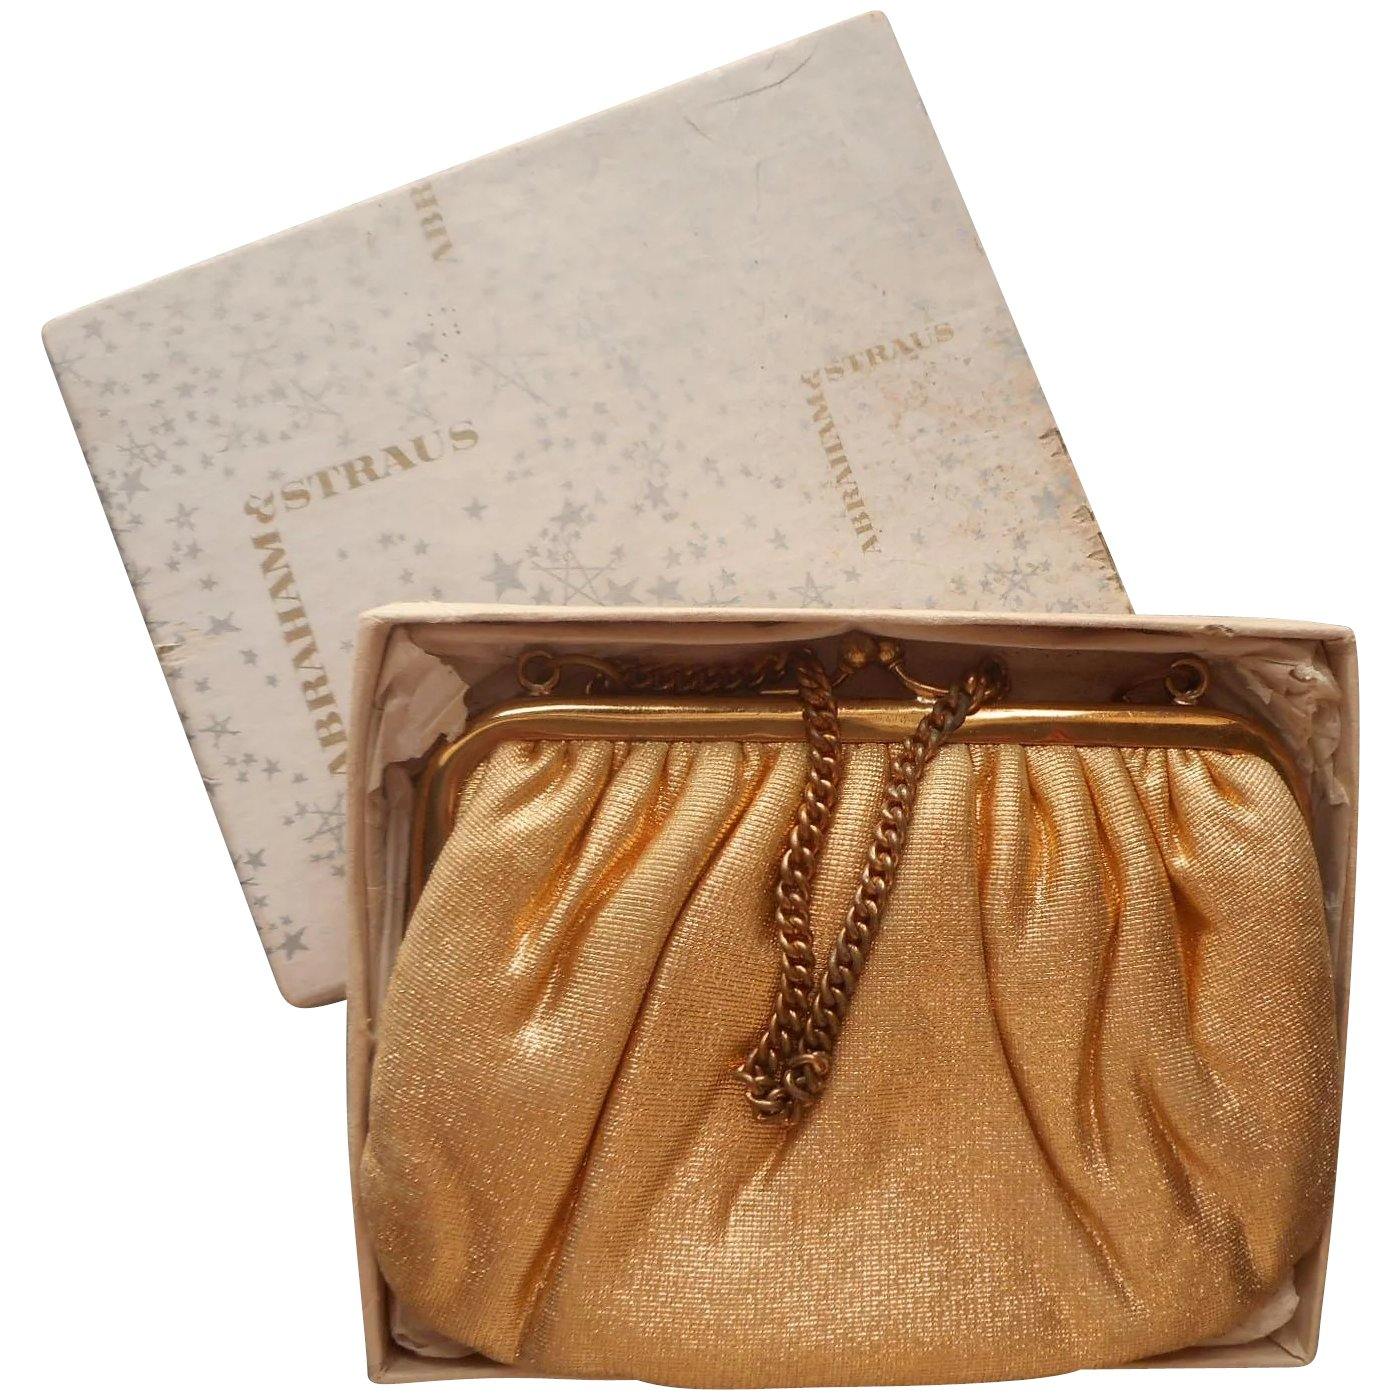 1950s Gold Lame Little Evening Purse Bag Vintage Abraham Straus Box